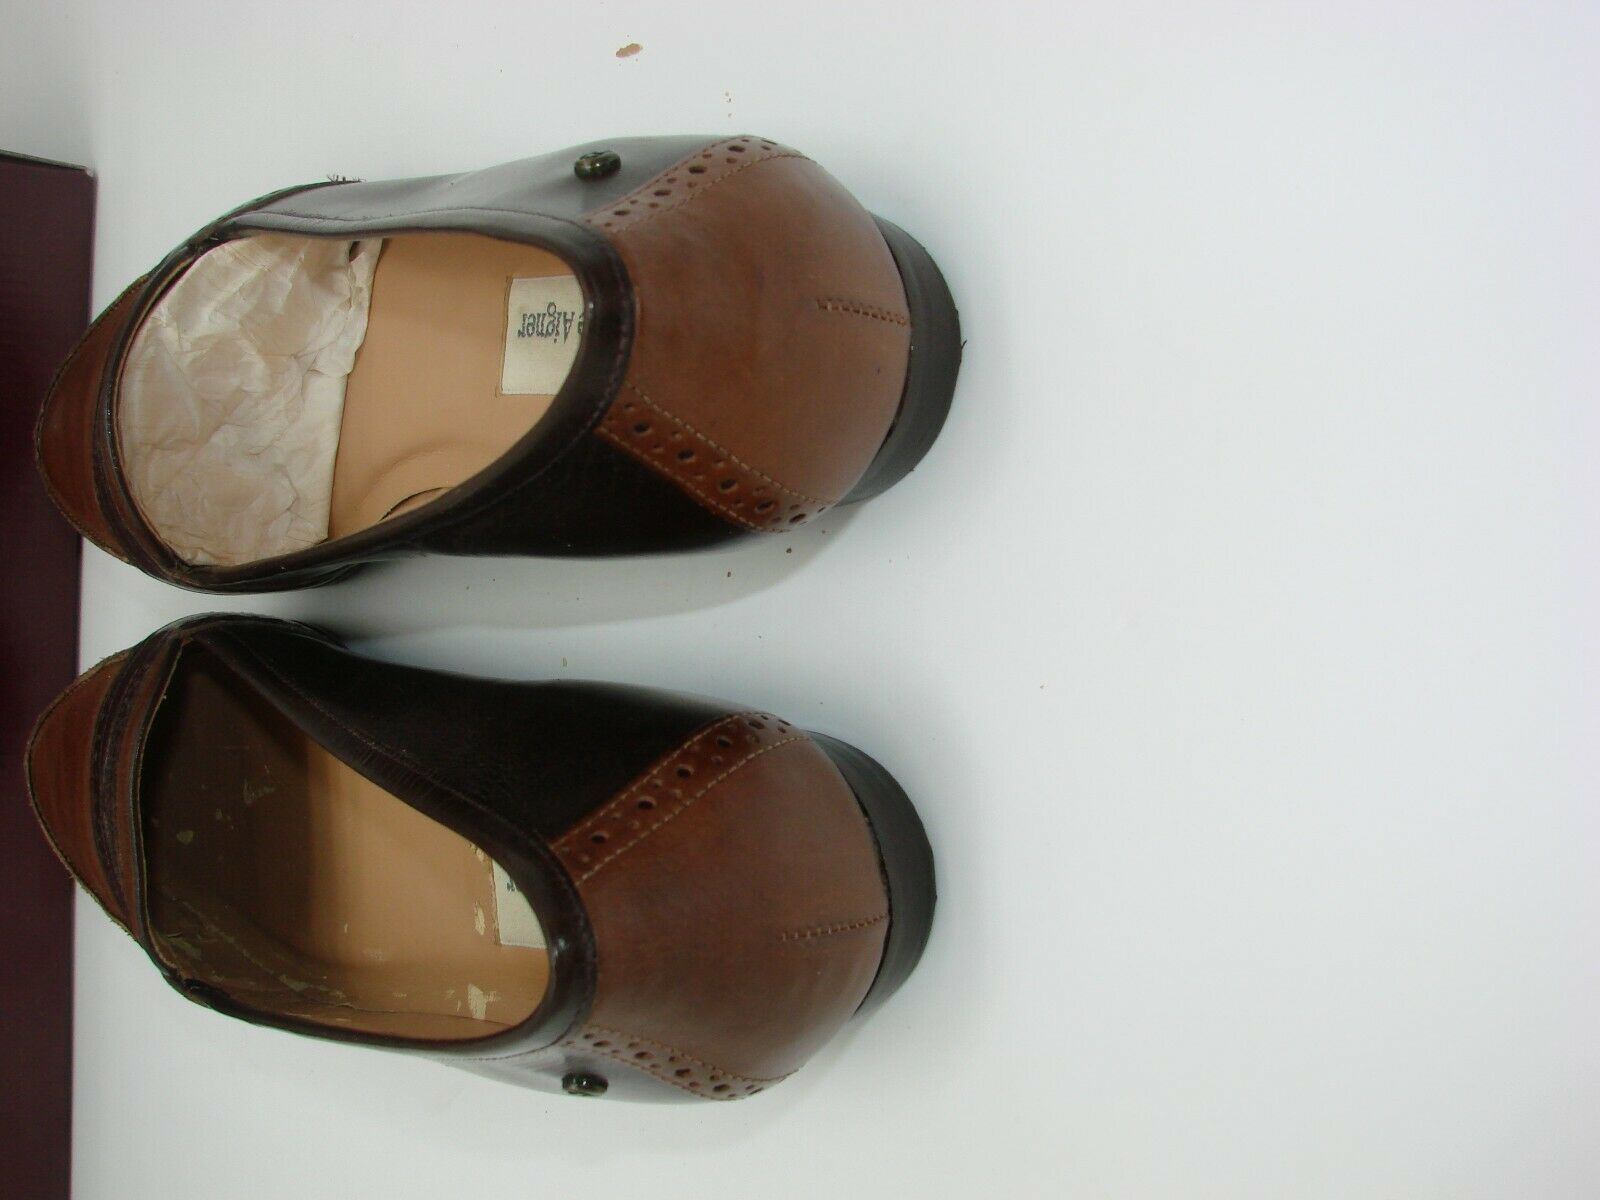 EUC Etienne Aigner Women's Two Tone  Slip on Loafer Casual, Career Size 81/2M image 7